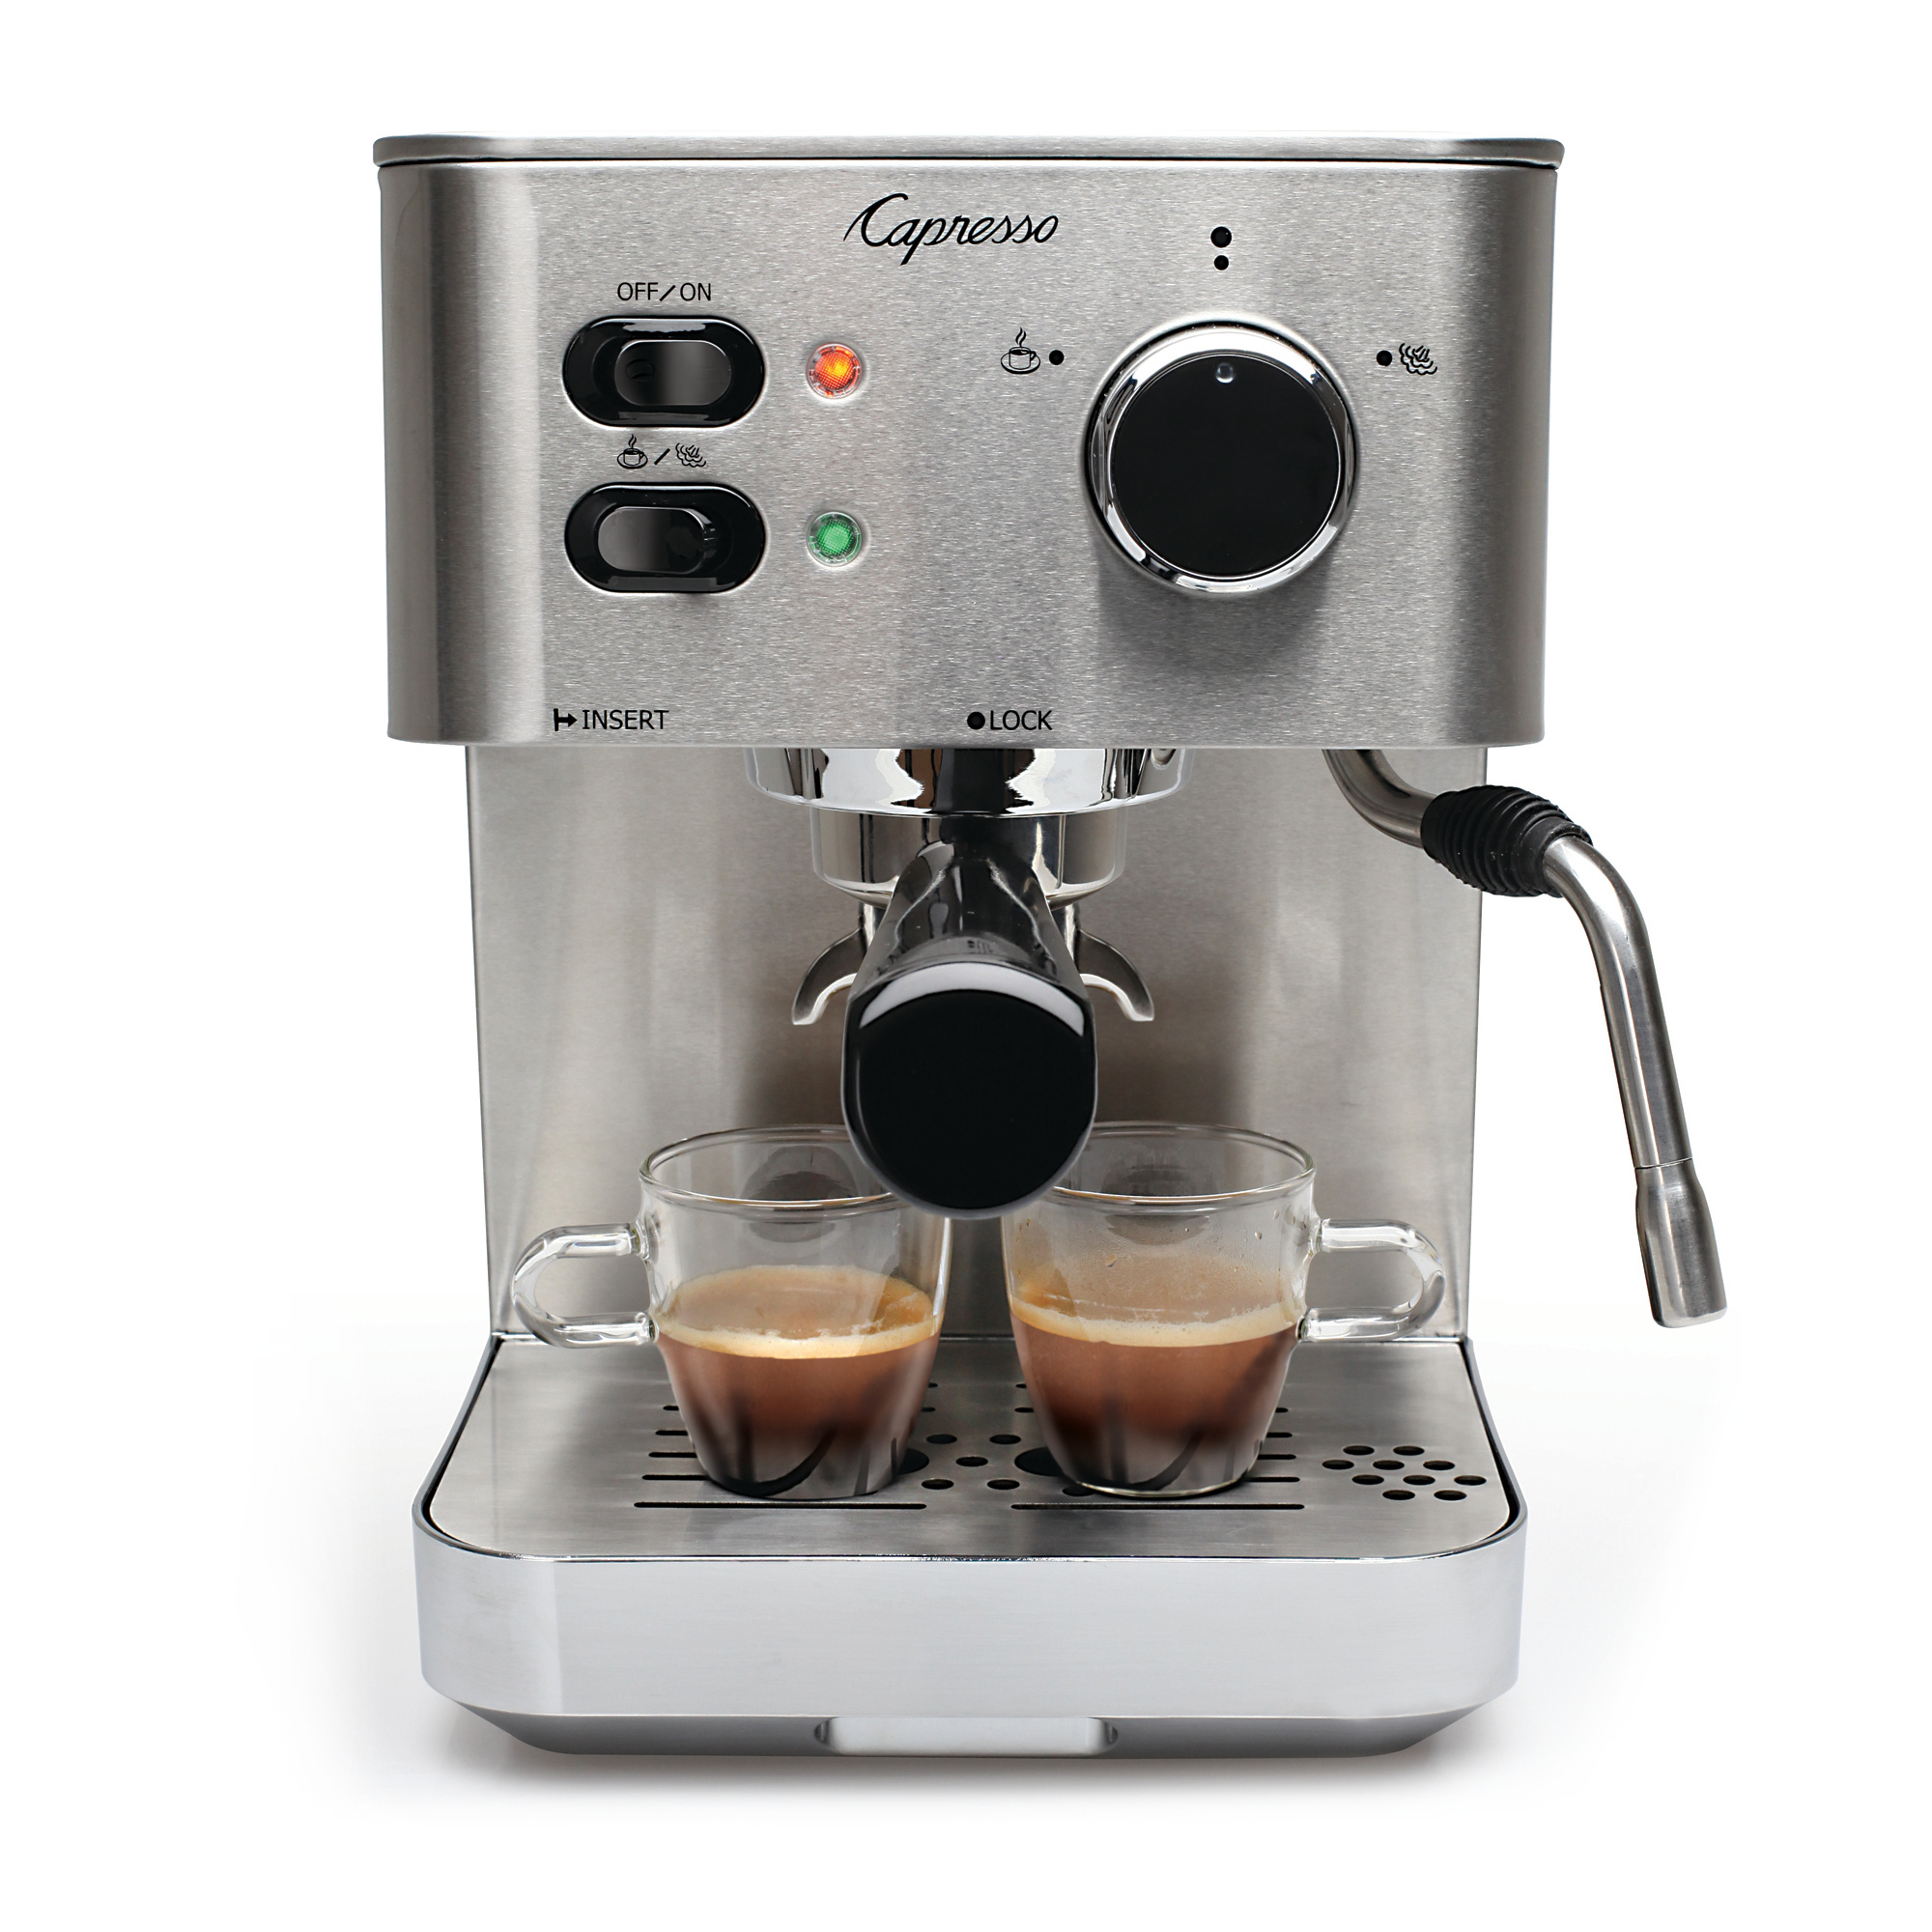 Capresso EC PRO 118.05 Stainless Steel Professional Espresso and Cappuccino Machine